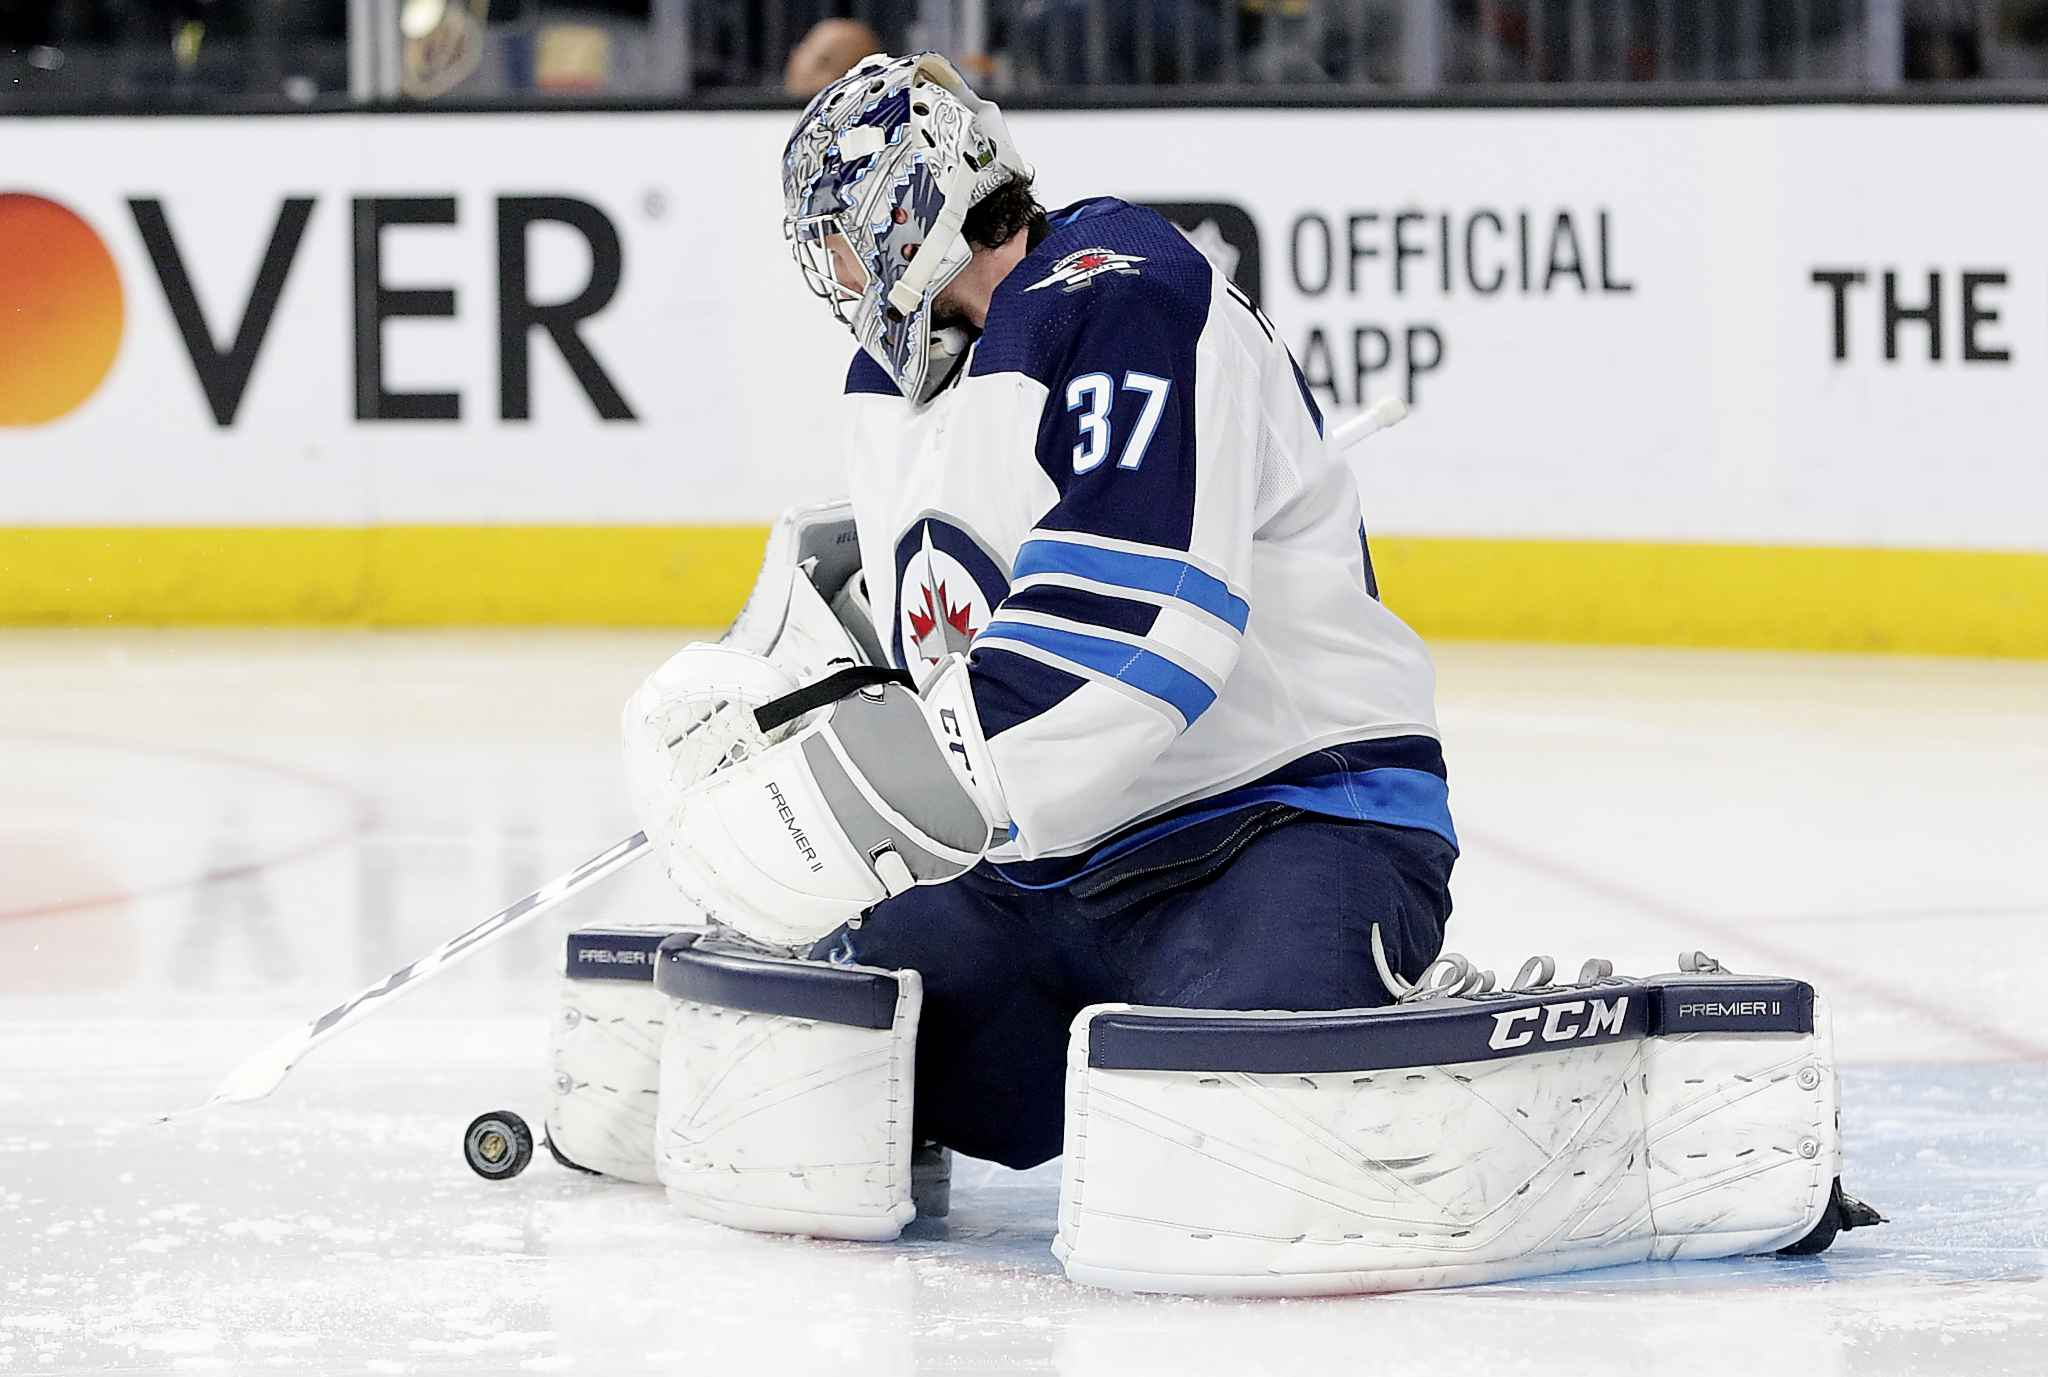 Last season, the Winnipeg Jets did a good job of keeping the shots to the perimeter, and Connor Hellebuyck usually made the save. (John Locher / The Associated Press files)